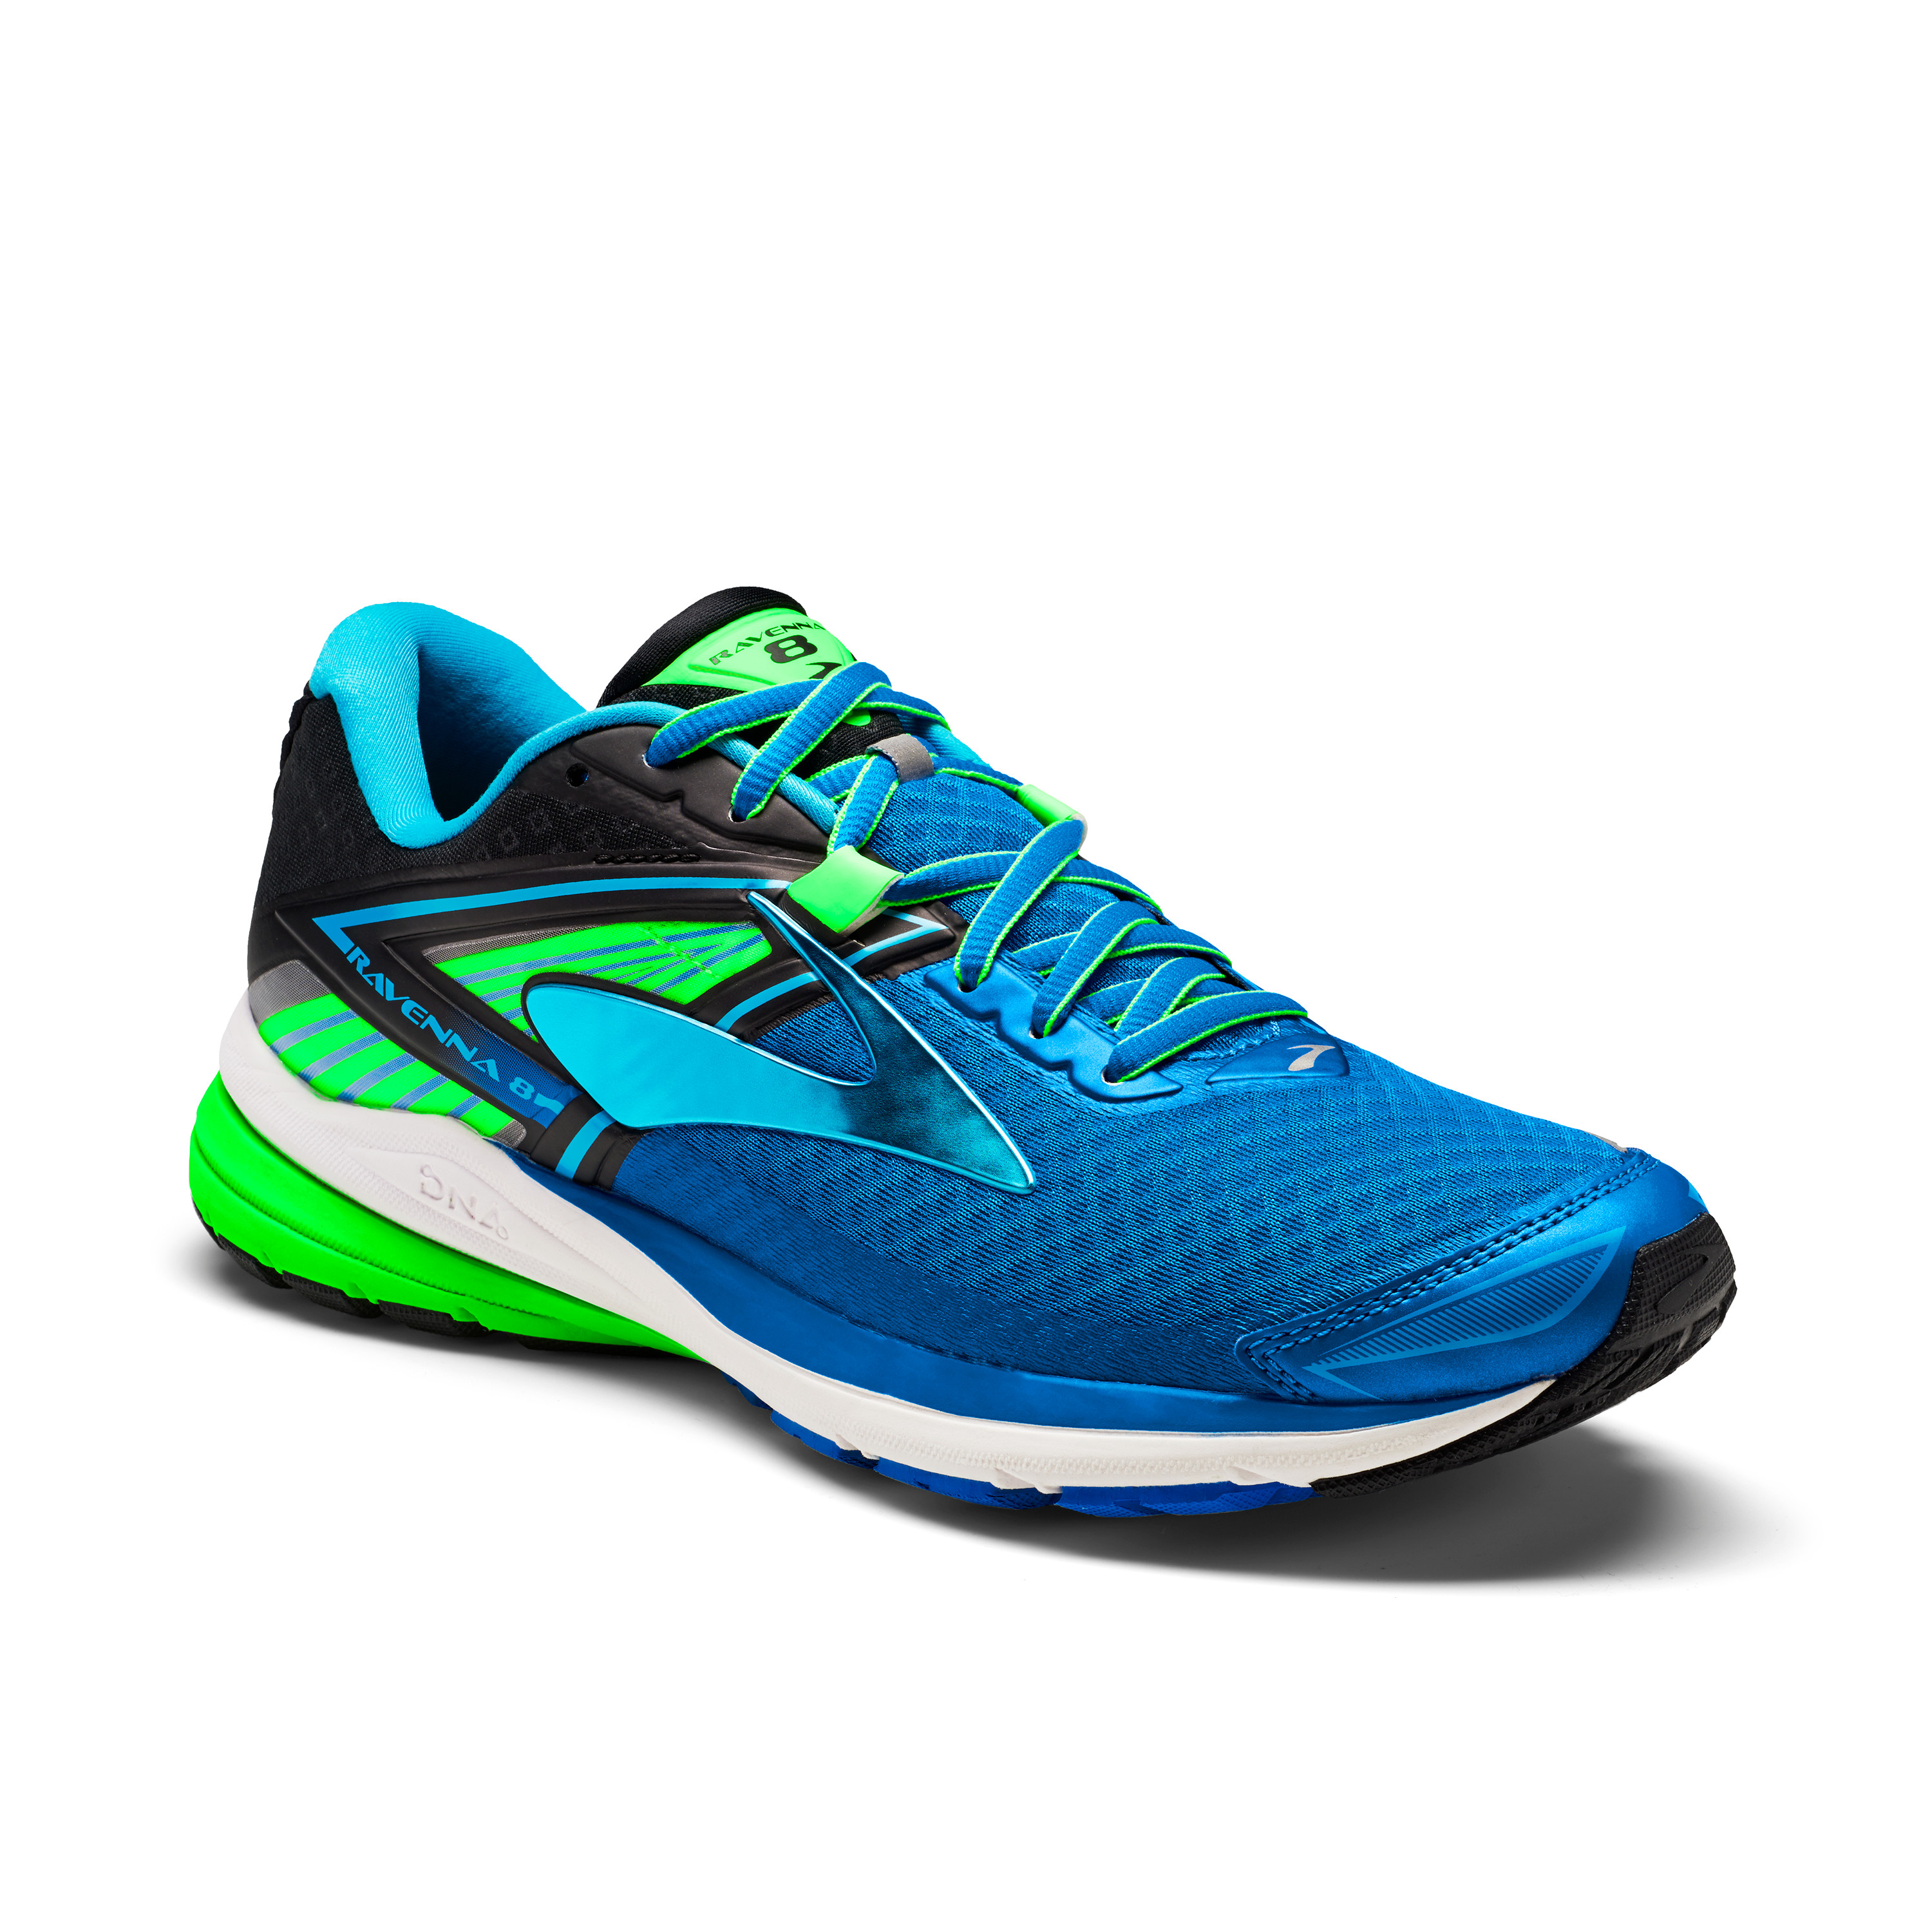 MEN S RAVENNA 8 - Brooks Running Shoes SA db1483a5fc